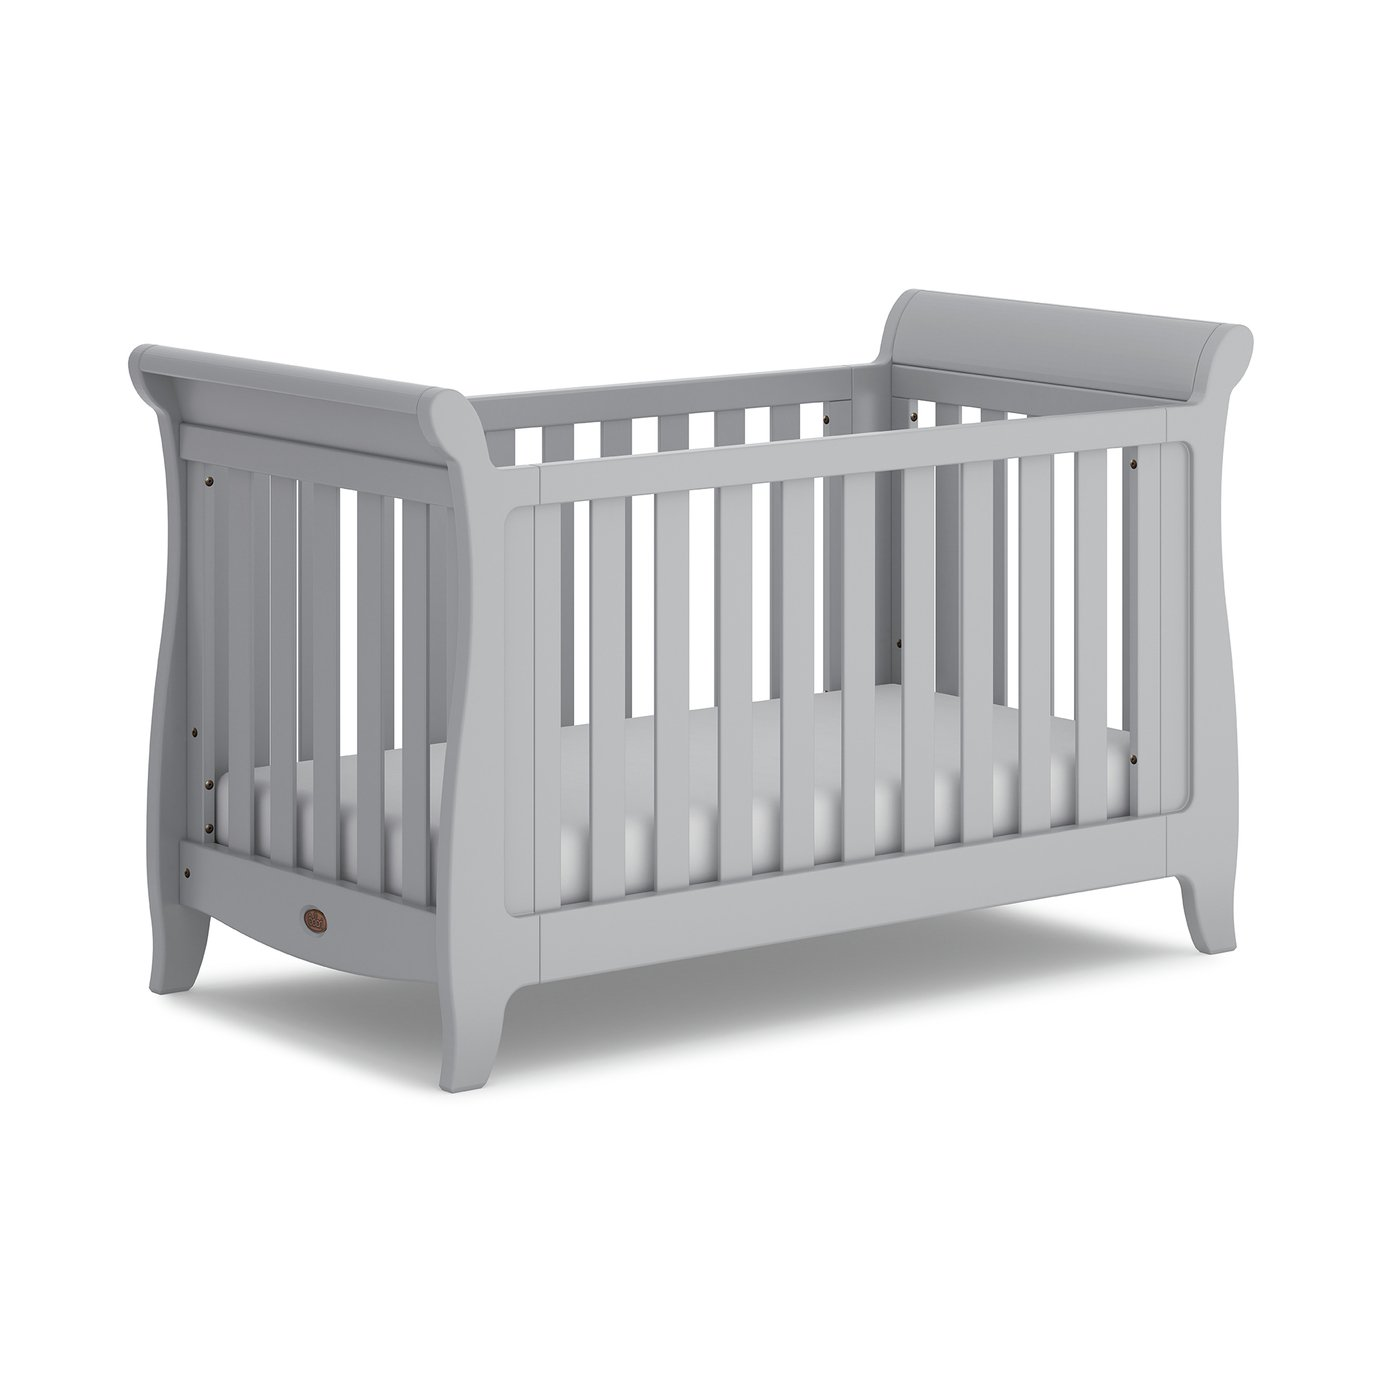 Boori Sleigh Expandable Cot Bed - Pebble